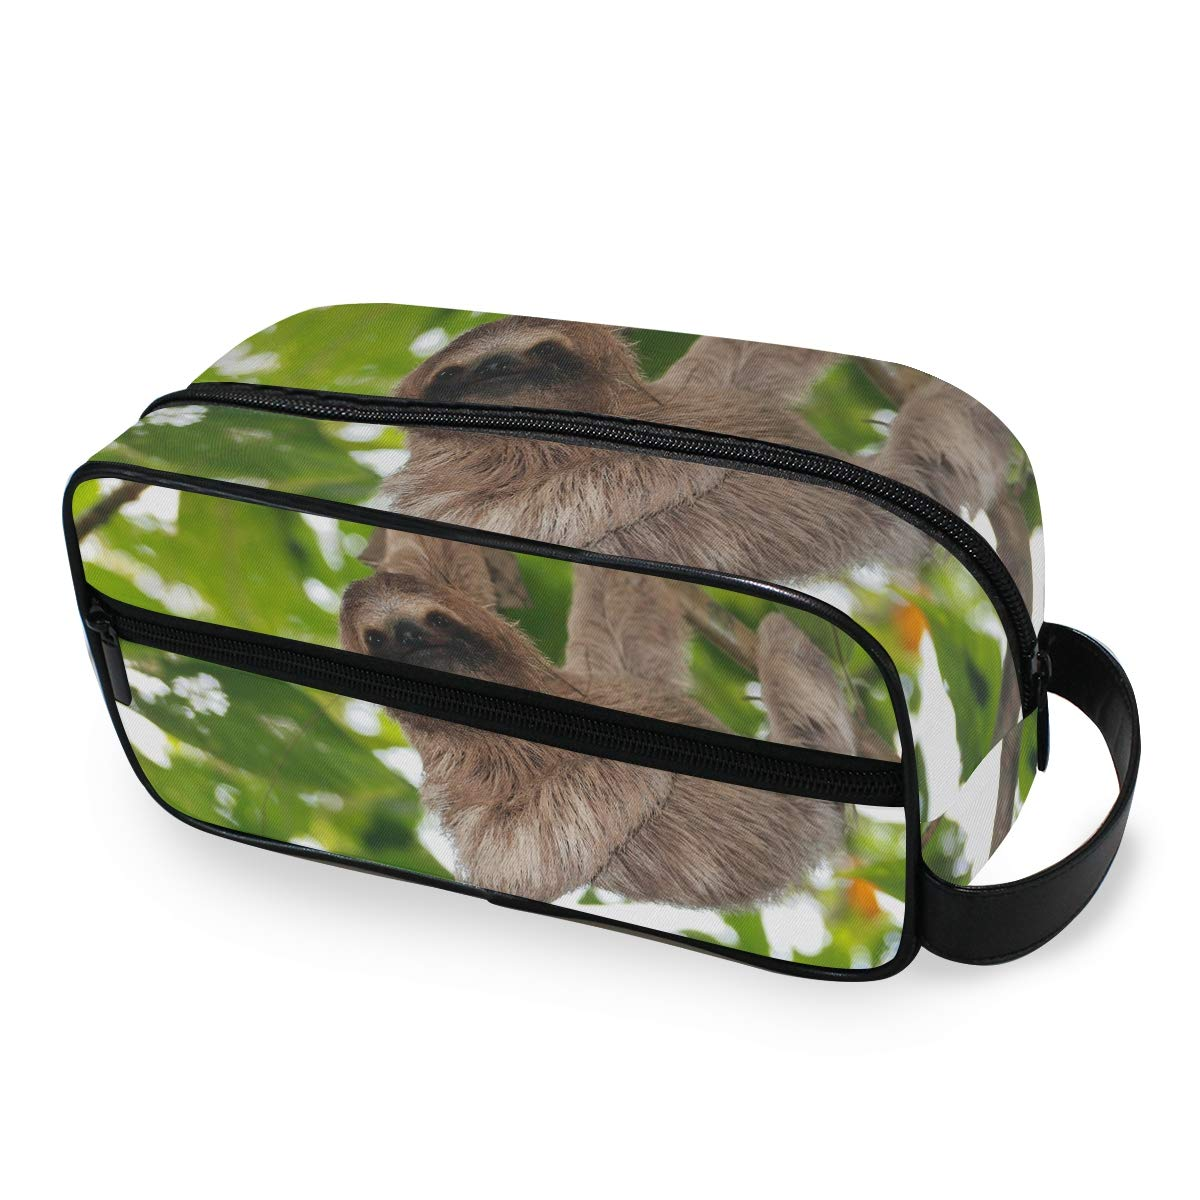 JOYPRINT Portable Travel Makeup Bag, Tree Animal Sloth Cosmetic Bag Toiletry Bag Pouch with Zipper Multifunction Cosmetic Case for Women Girls